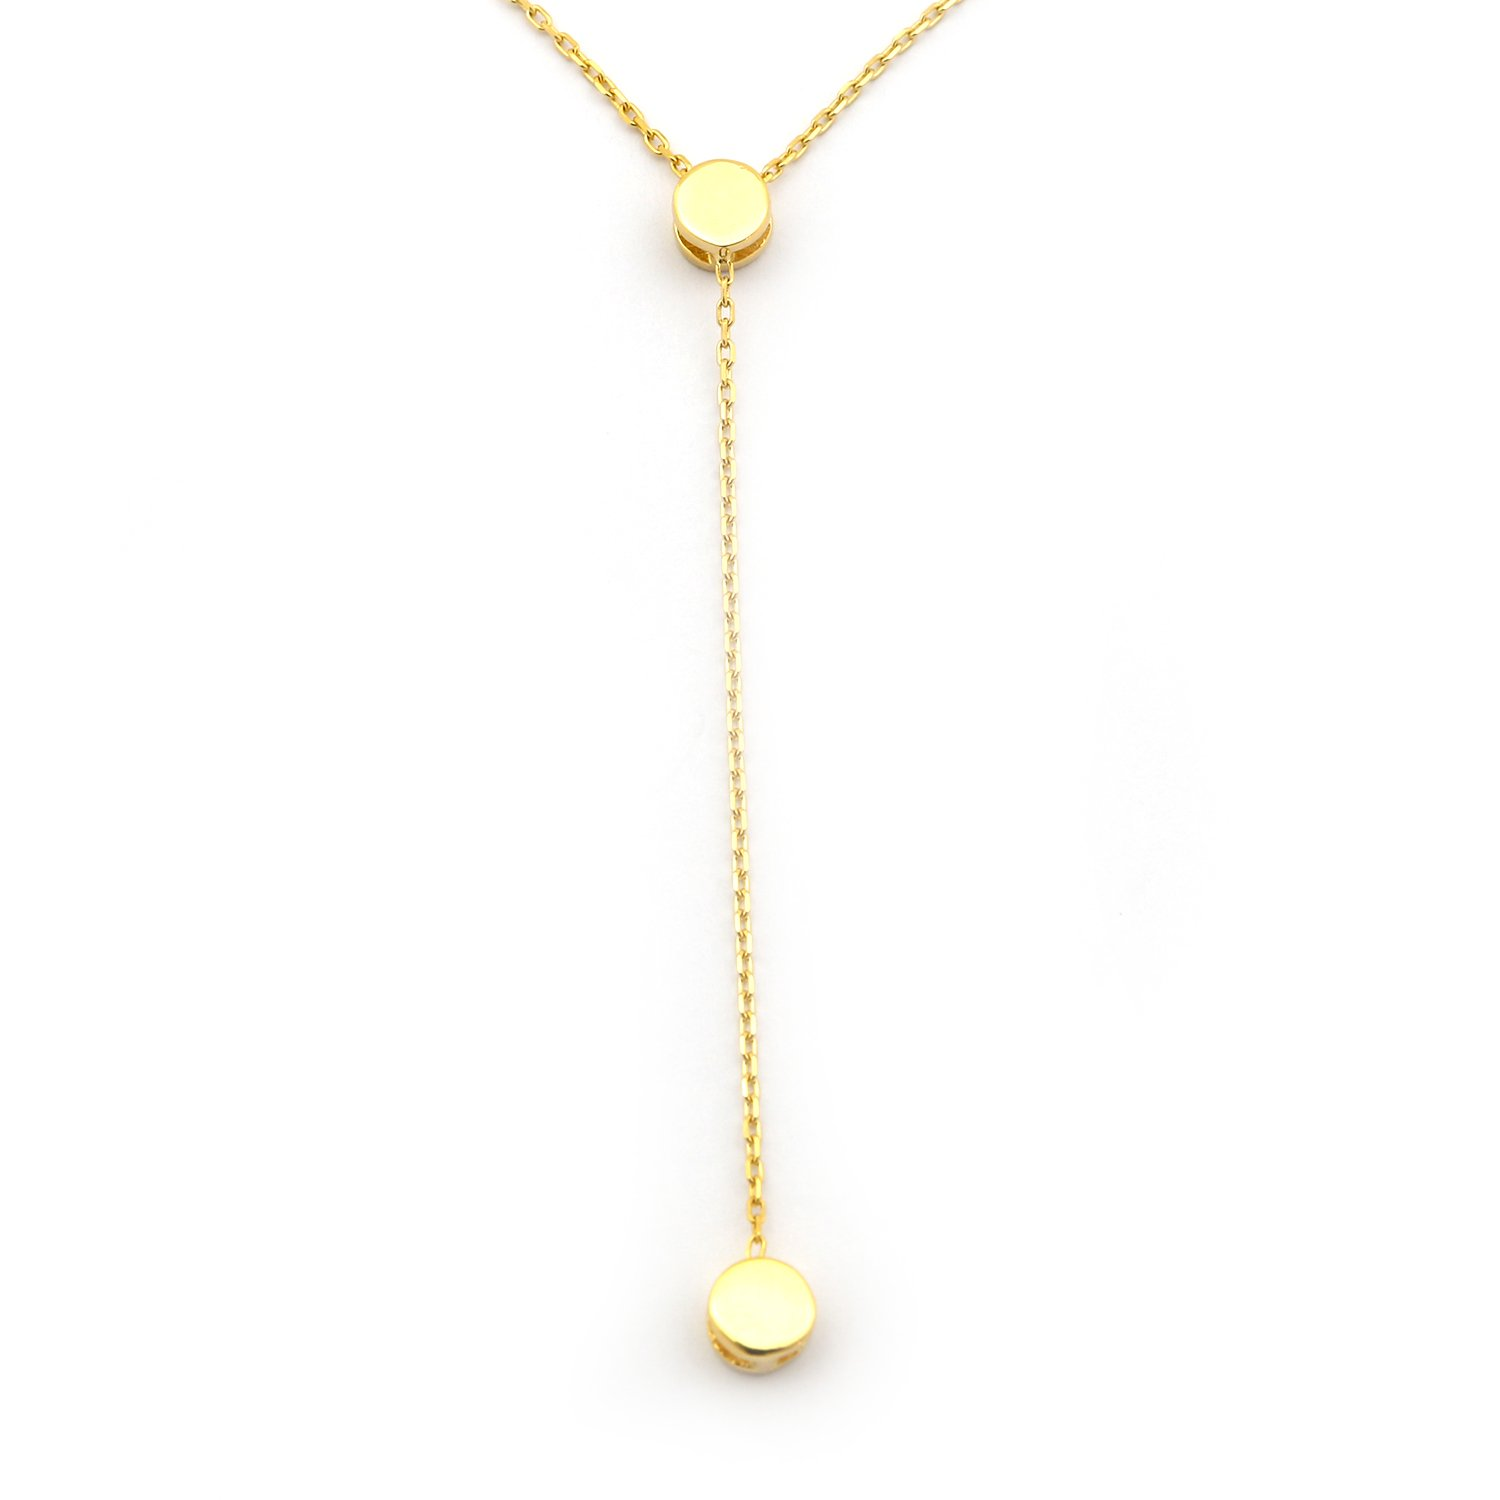 14k Yellow Gold Small Delicate Circle Lariat 17'' Necklace